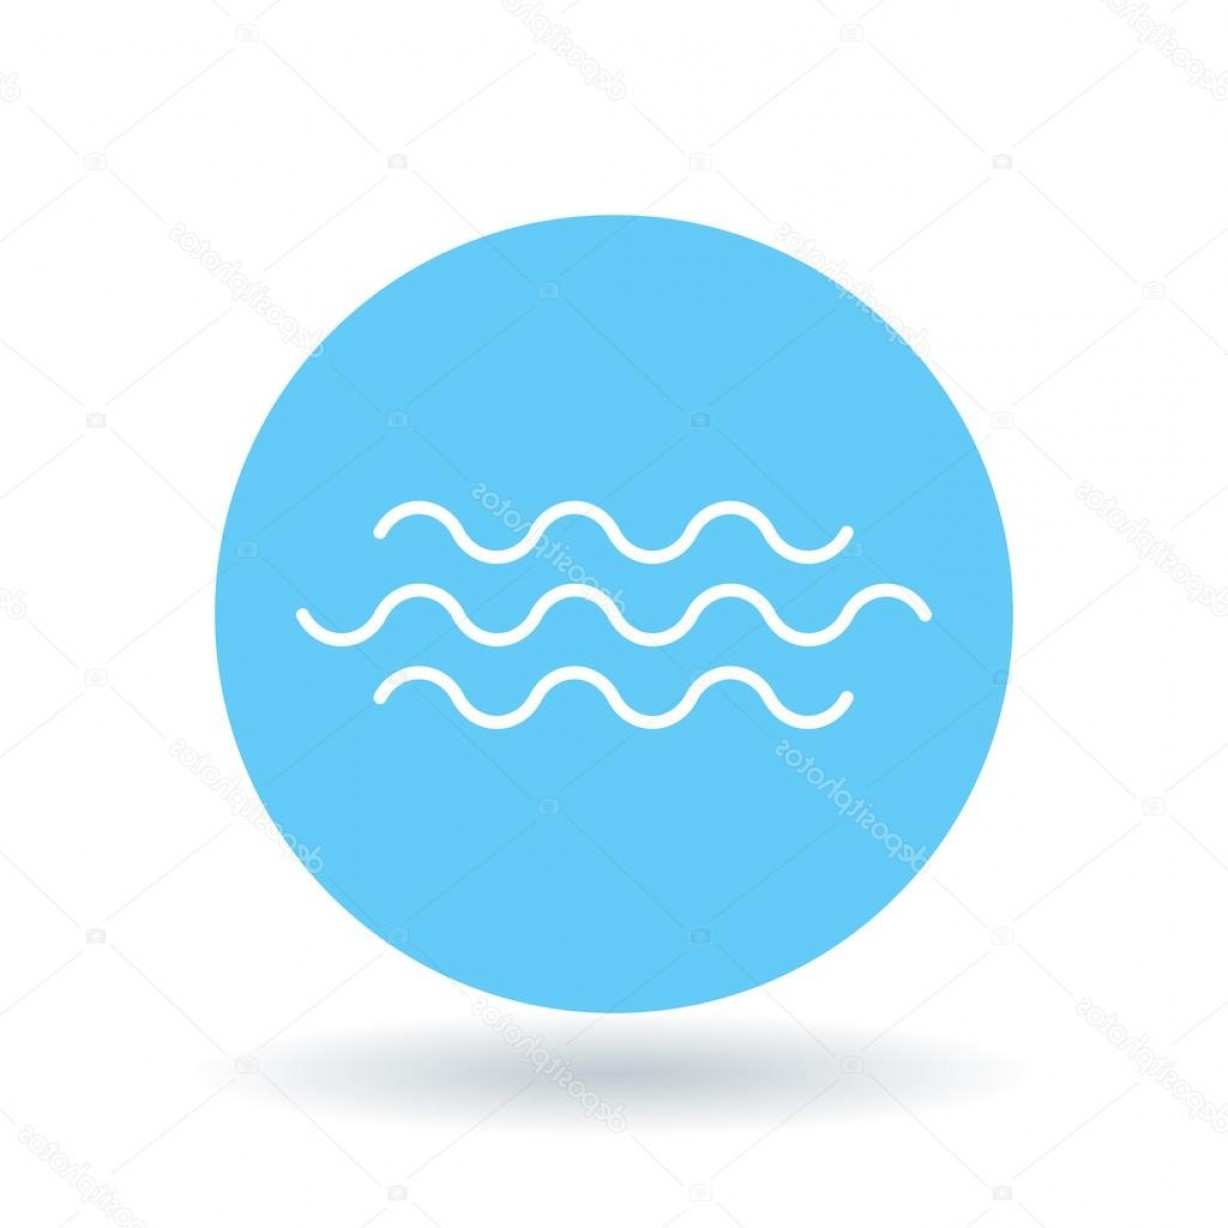 Water Flow Vector: Stock Illustration Water Flow Icon River Crossing